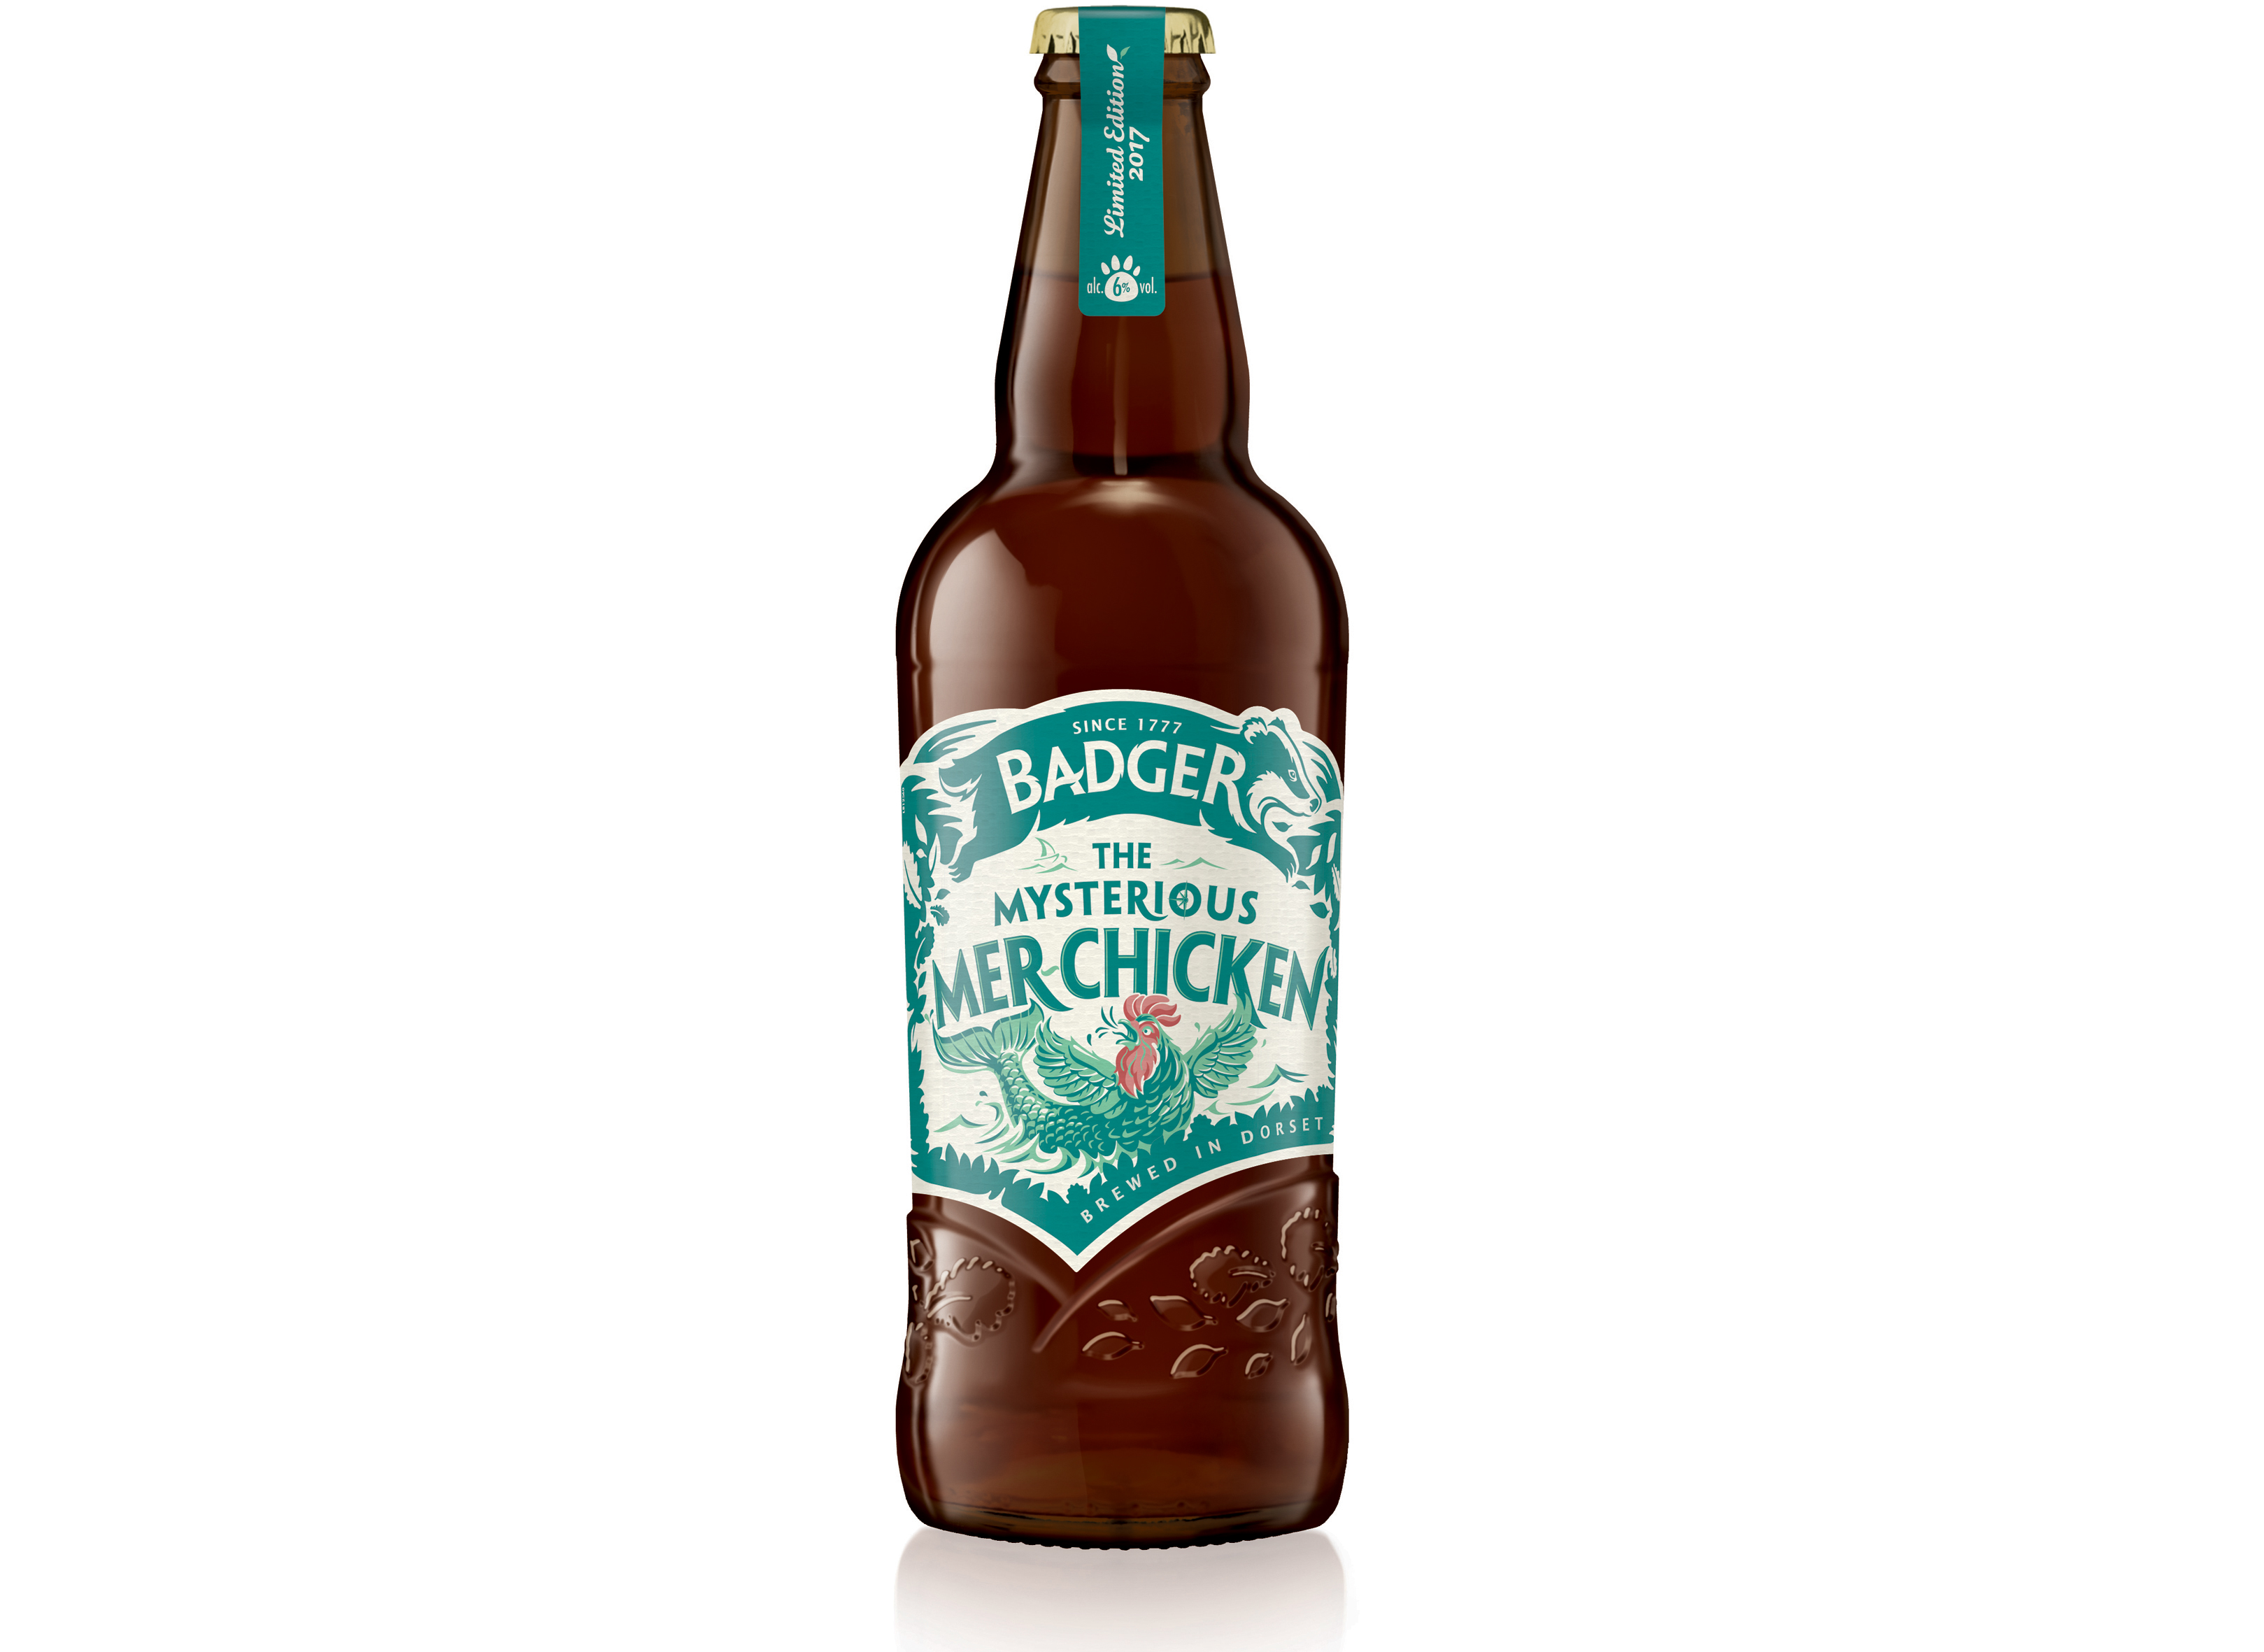 Badget Ales' new limited edition Mer-chicken beer, Booths